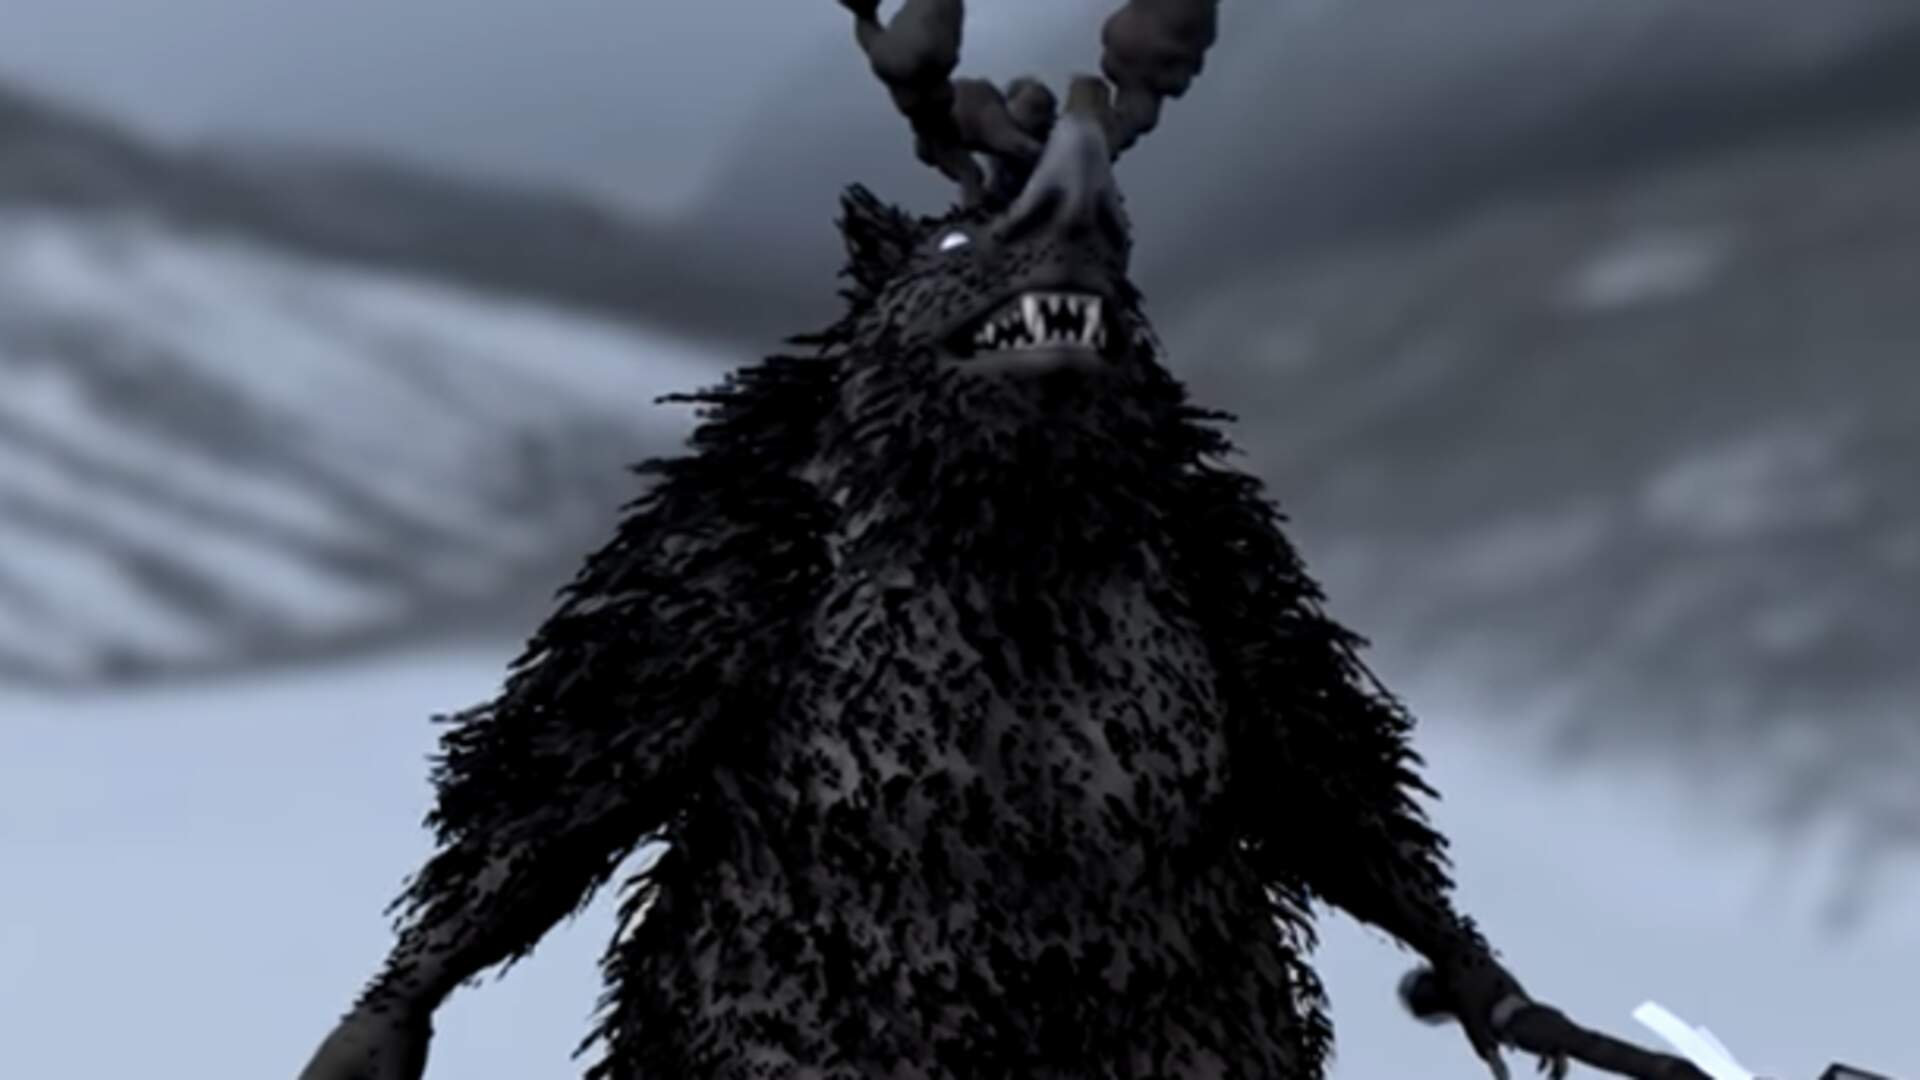 A New Bloodborne Datamine Shows off Unused Beasts, Characters, and More